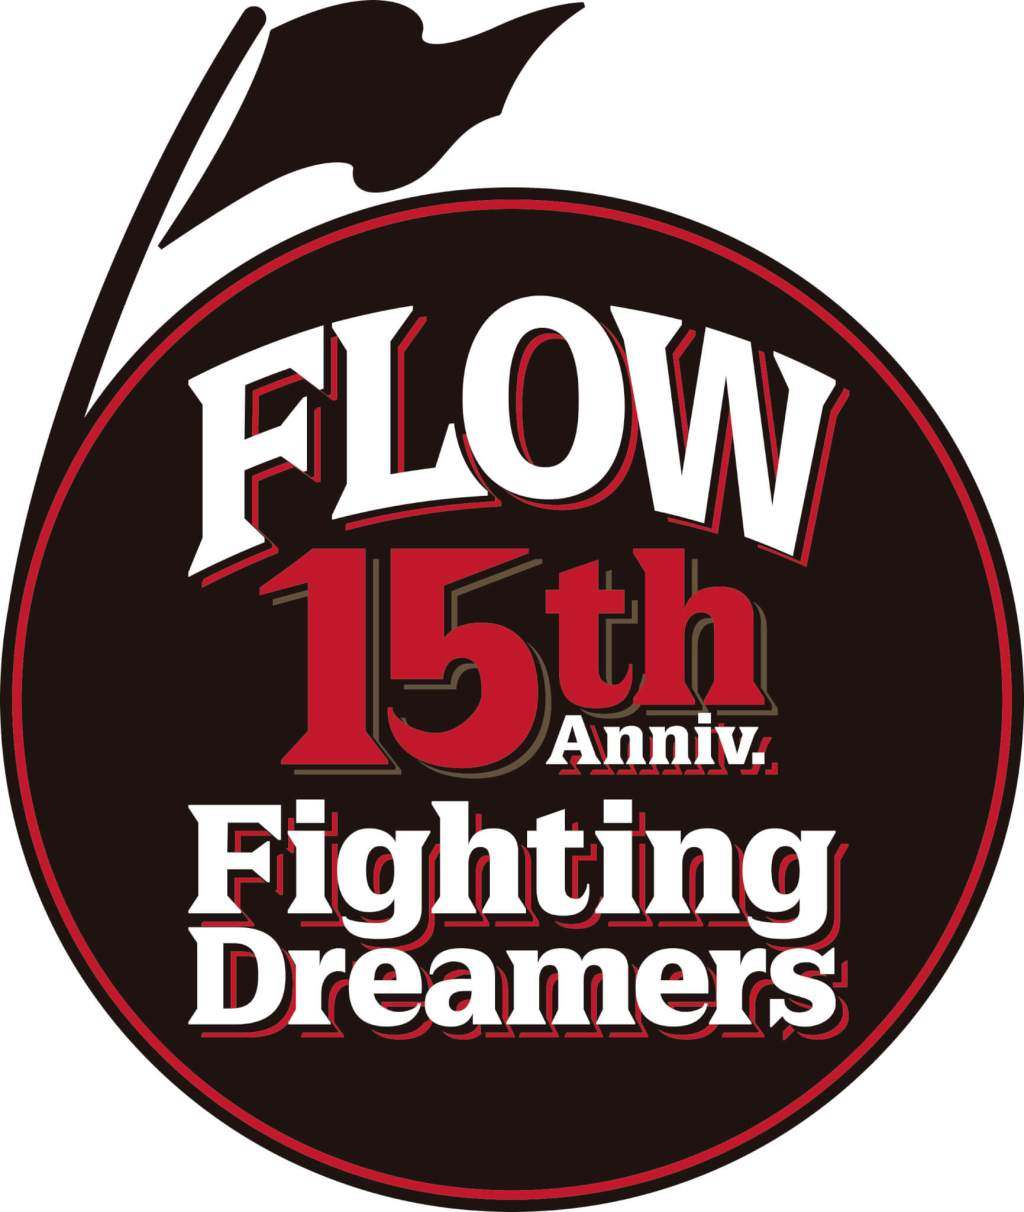 FLOW Announces World Tour to Celebrate 15th Anniversary